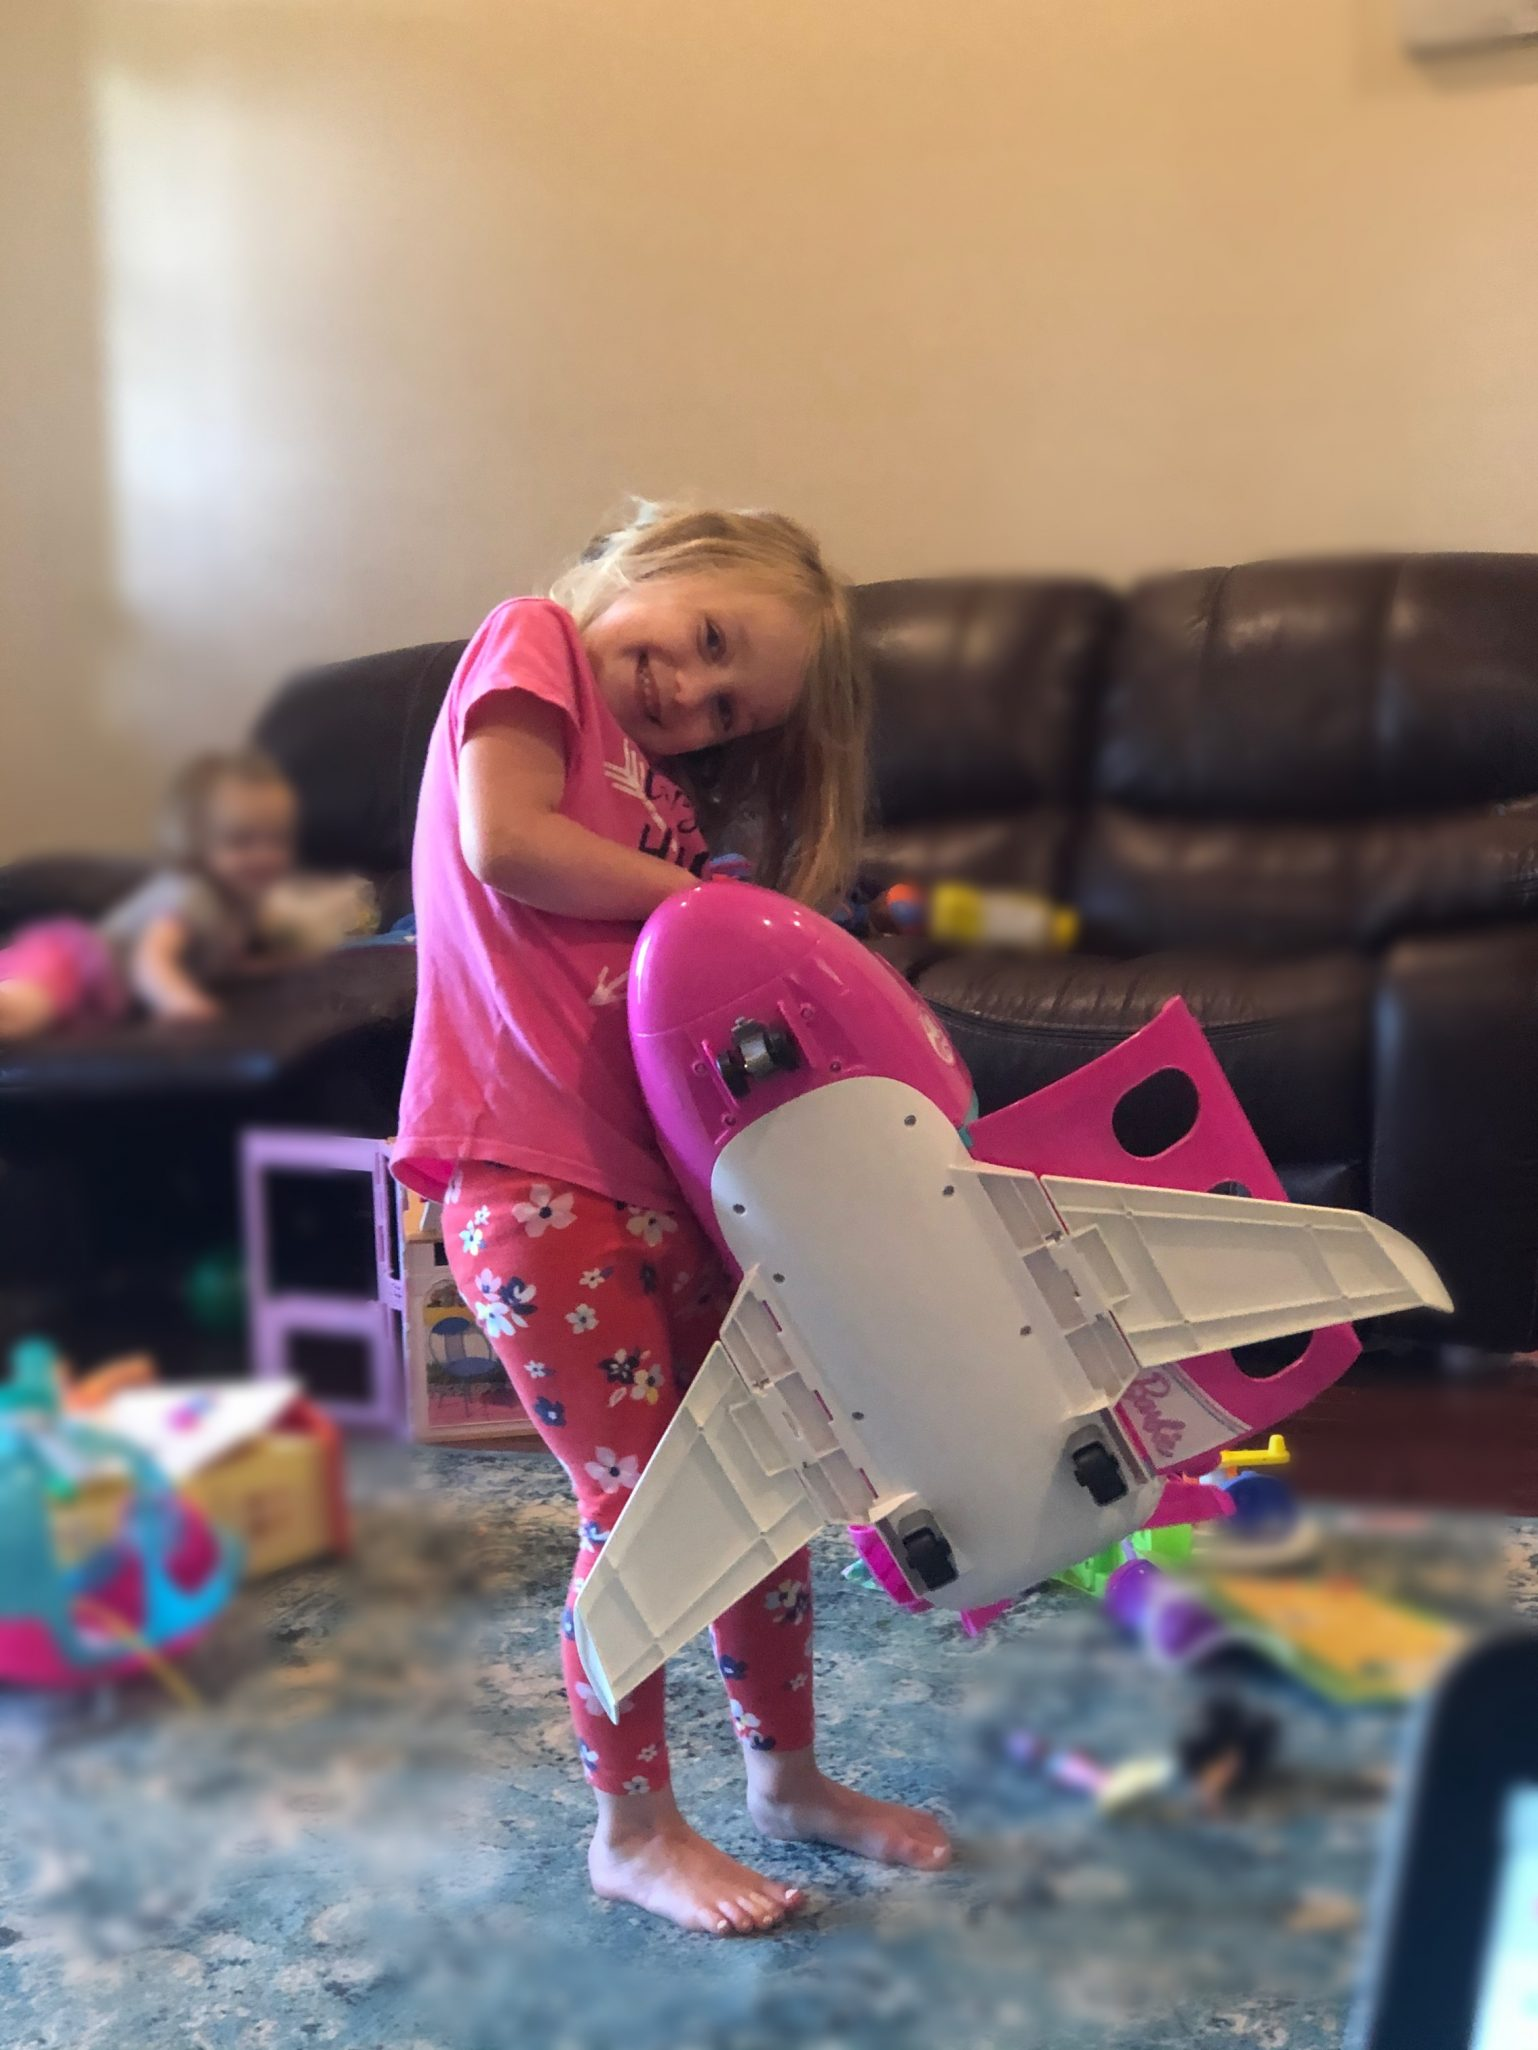 Barbie Dream Plane-Is it Worth the Price?